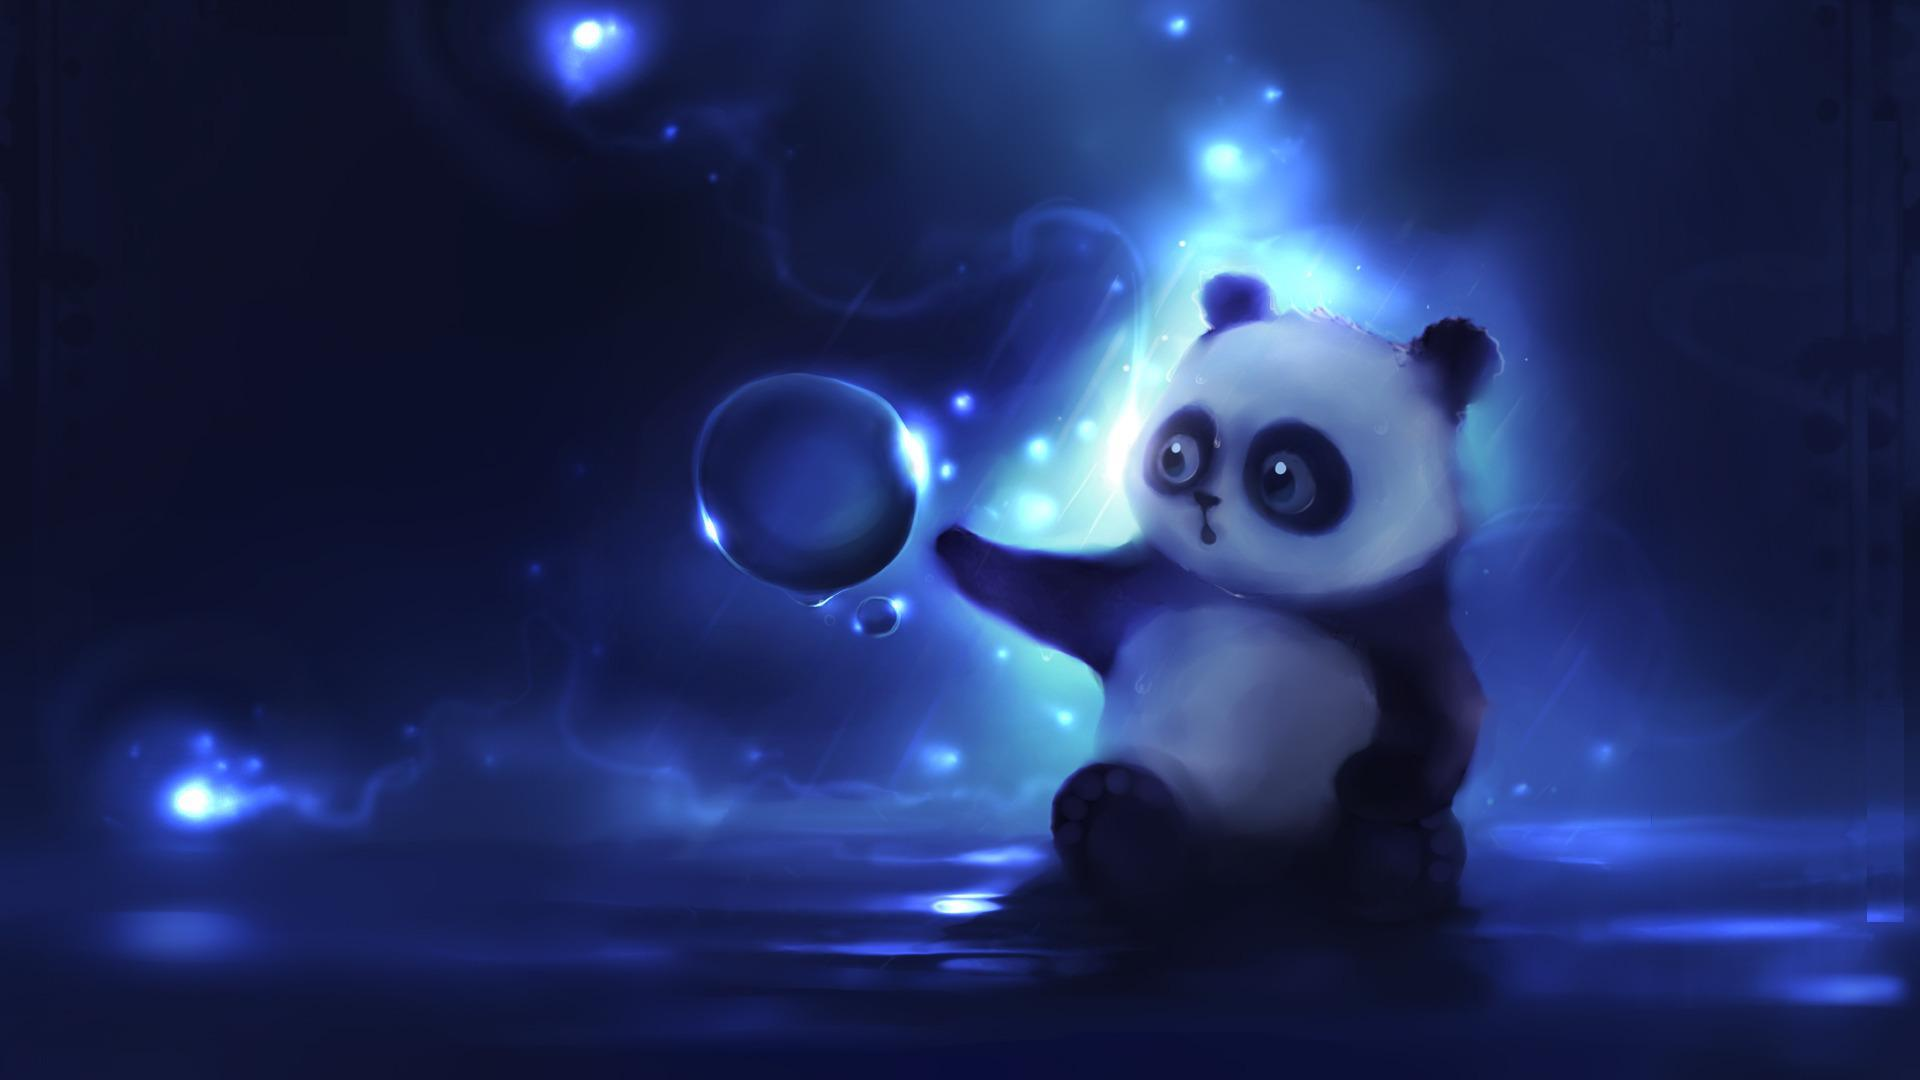 cute animated panda download beautiful animated desktop wallpapers